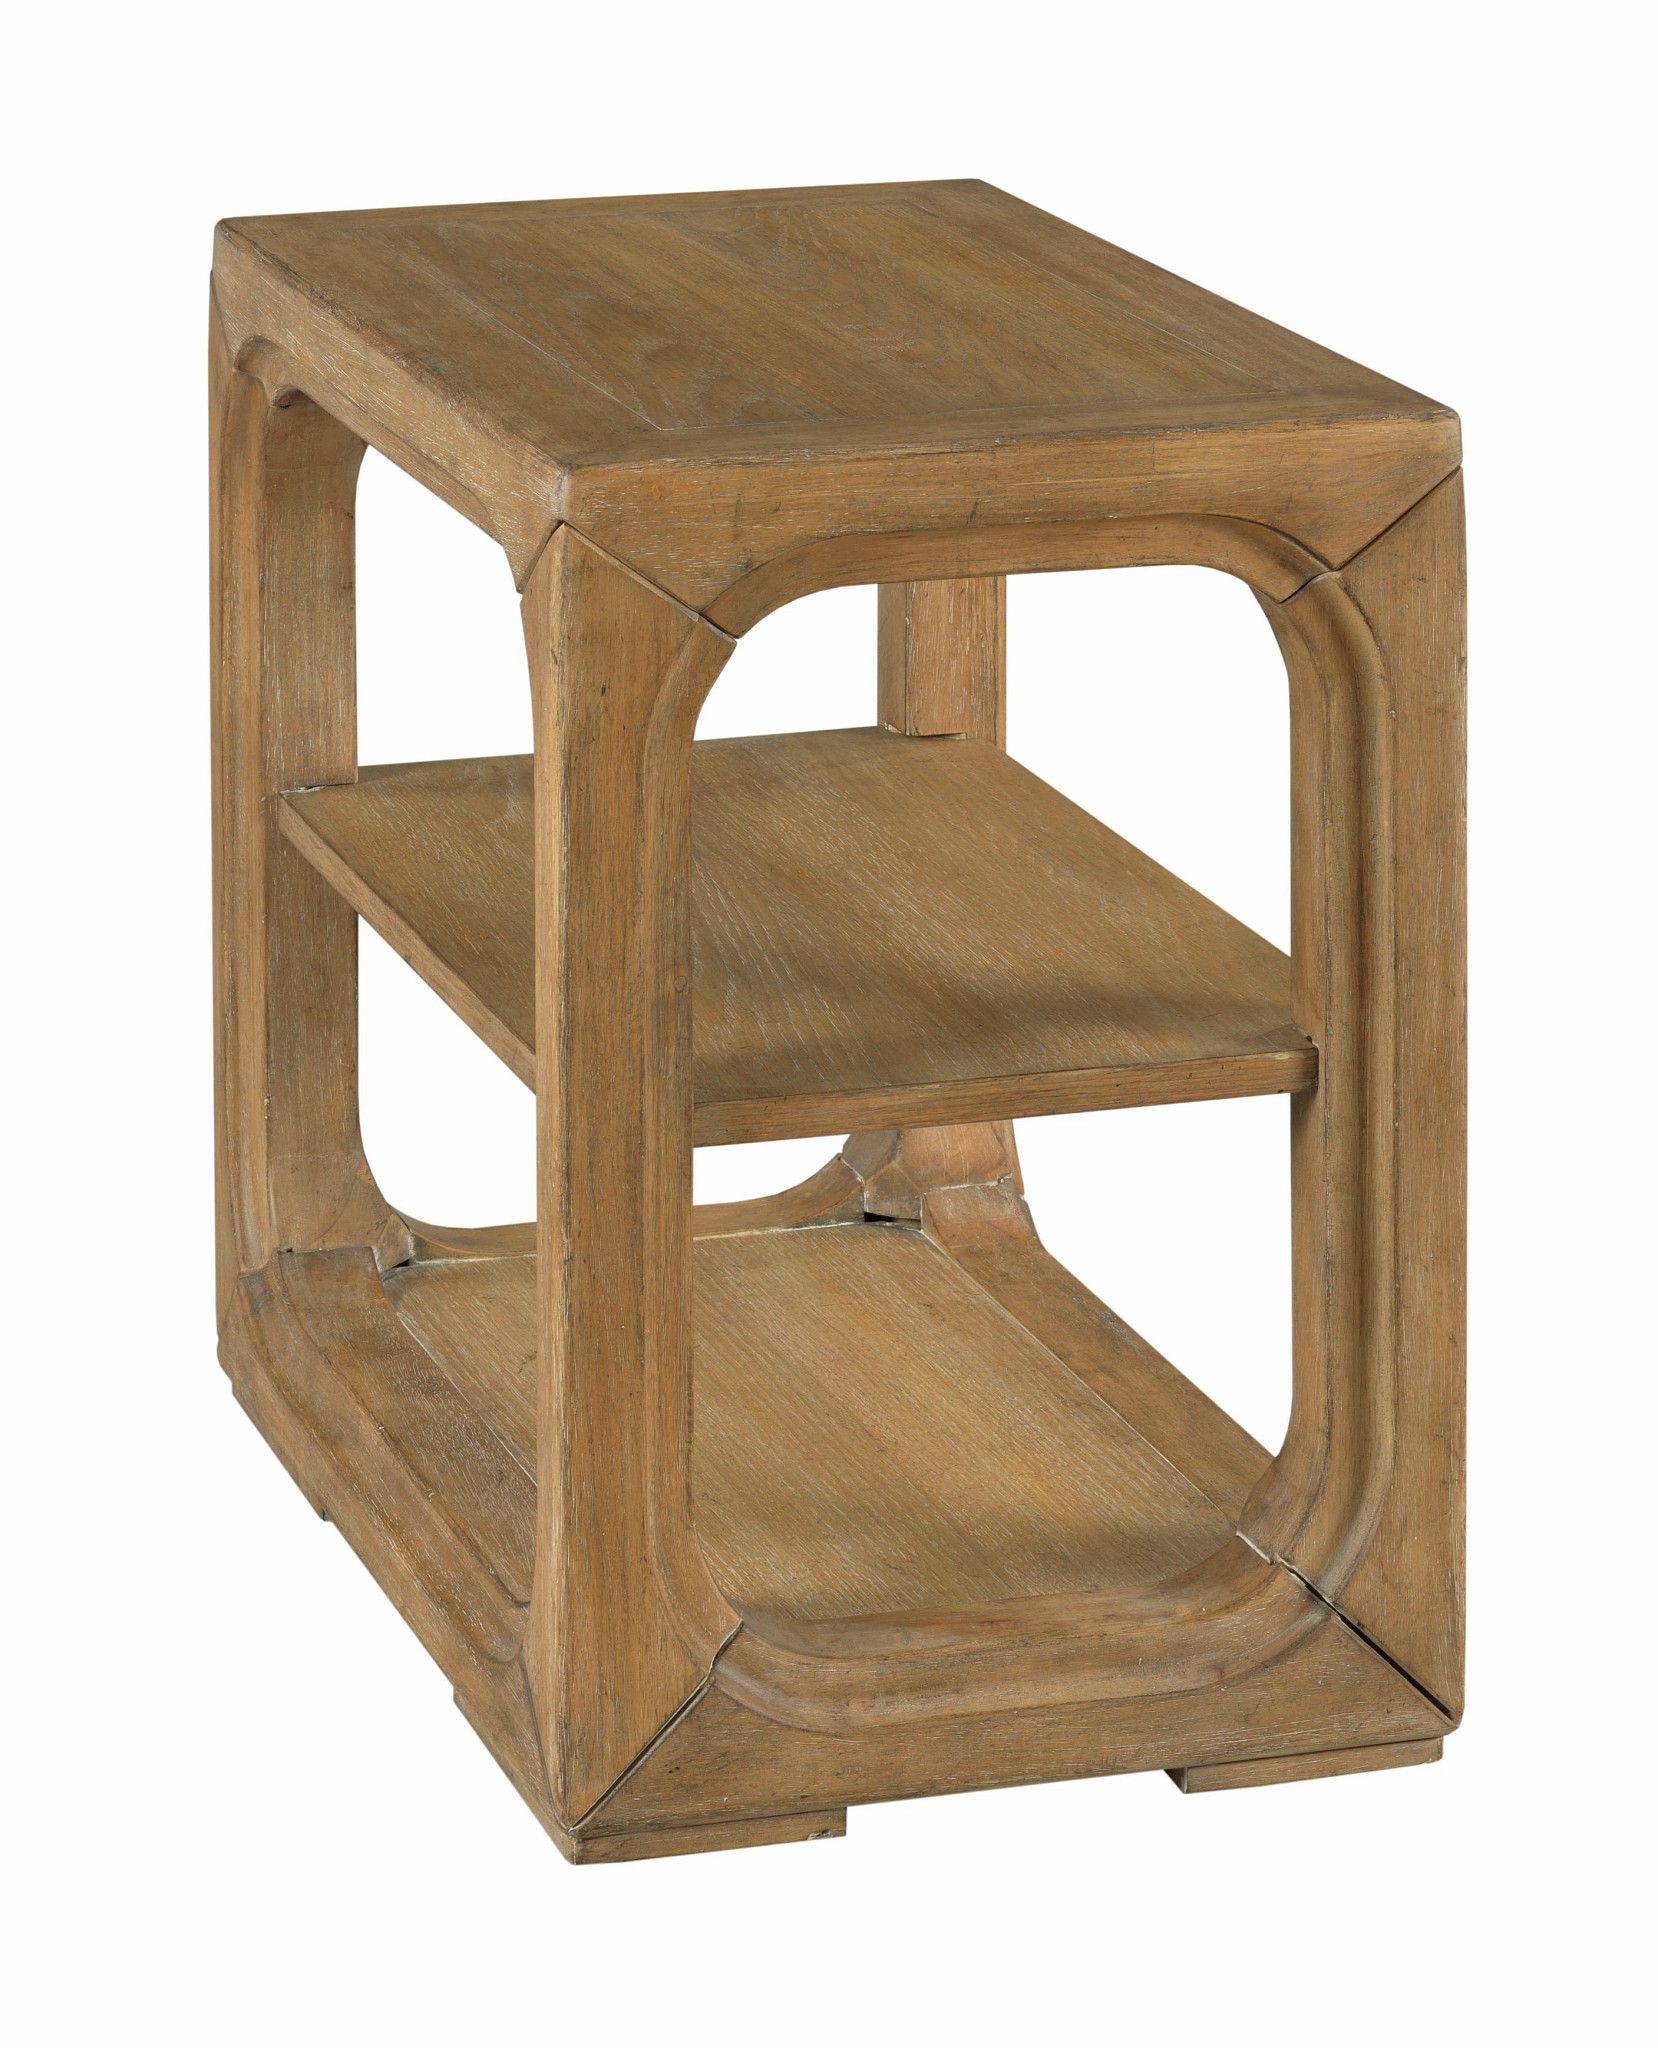 Jetson Chairside Table by Table Trends at Sprintz Furniture